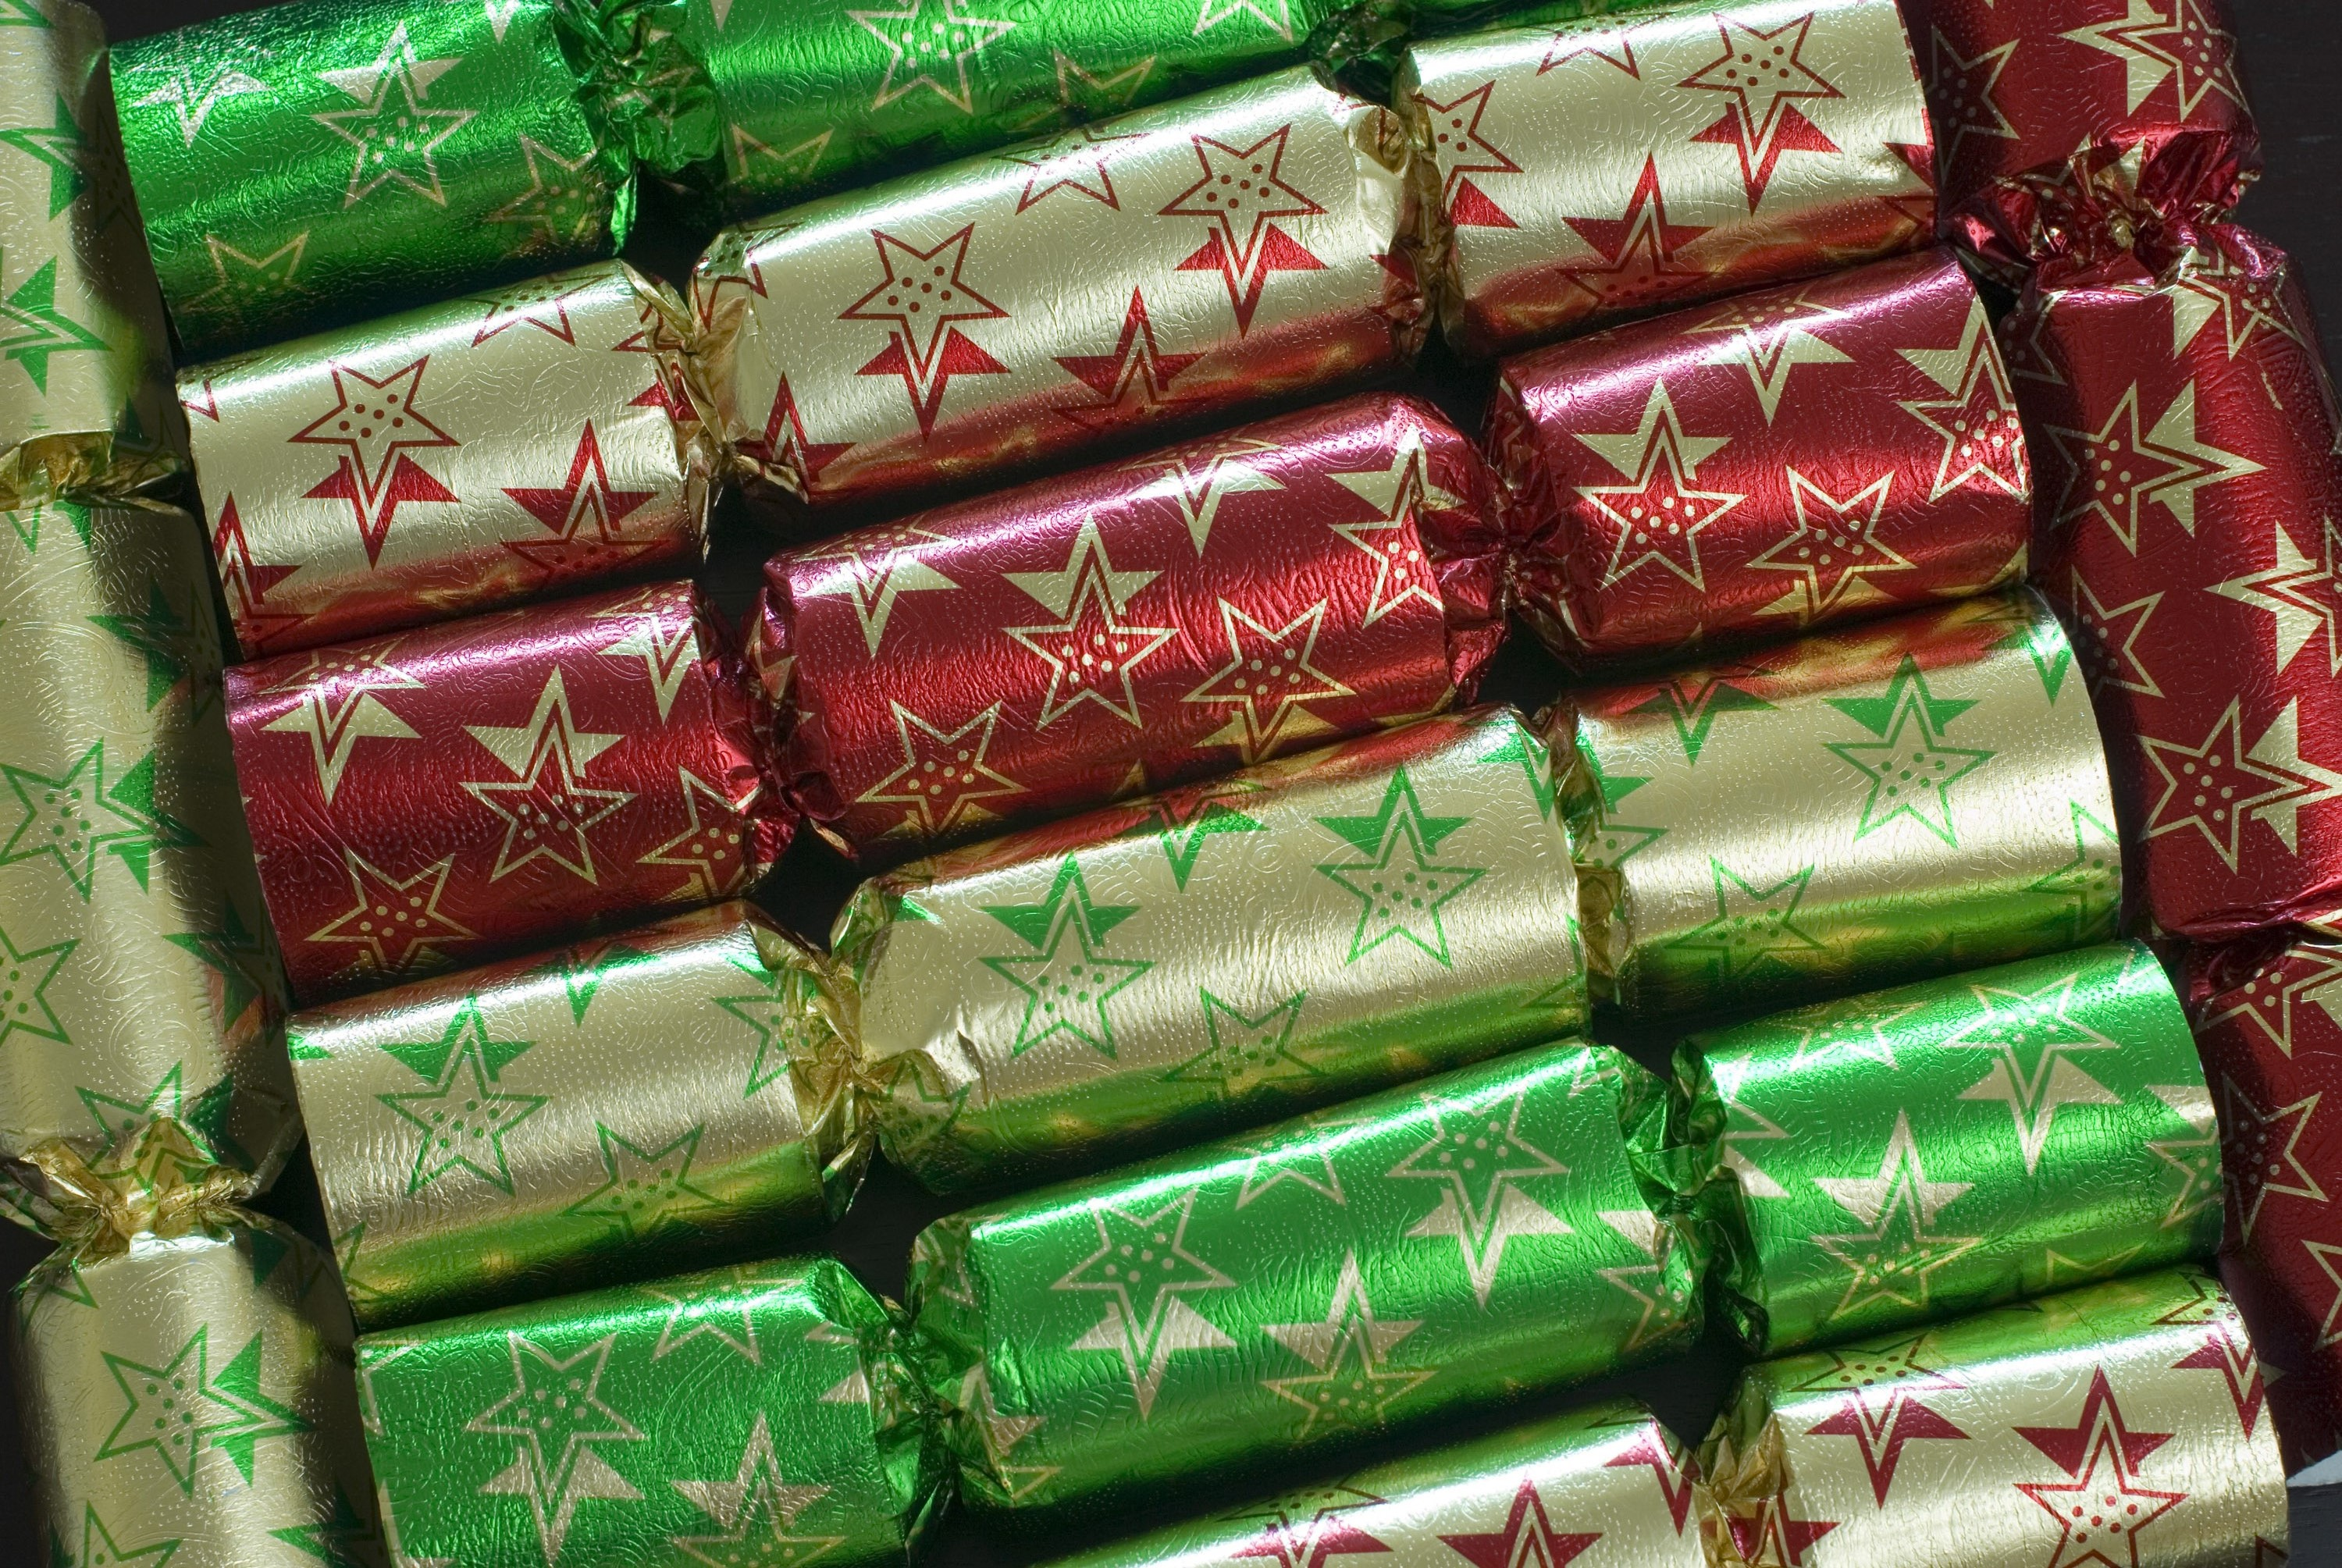 a background image of christmas crackers arranged at different angles